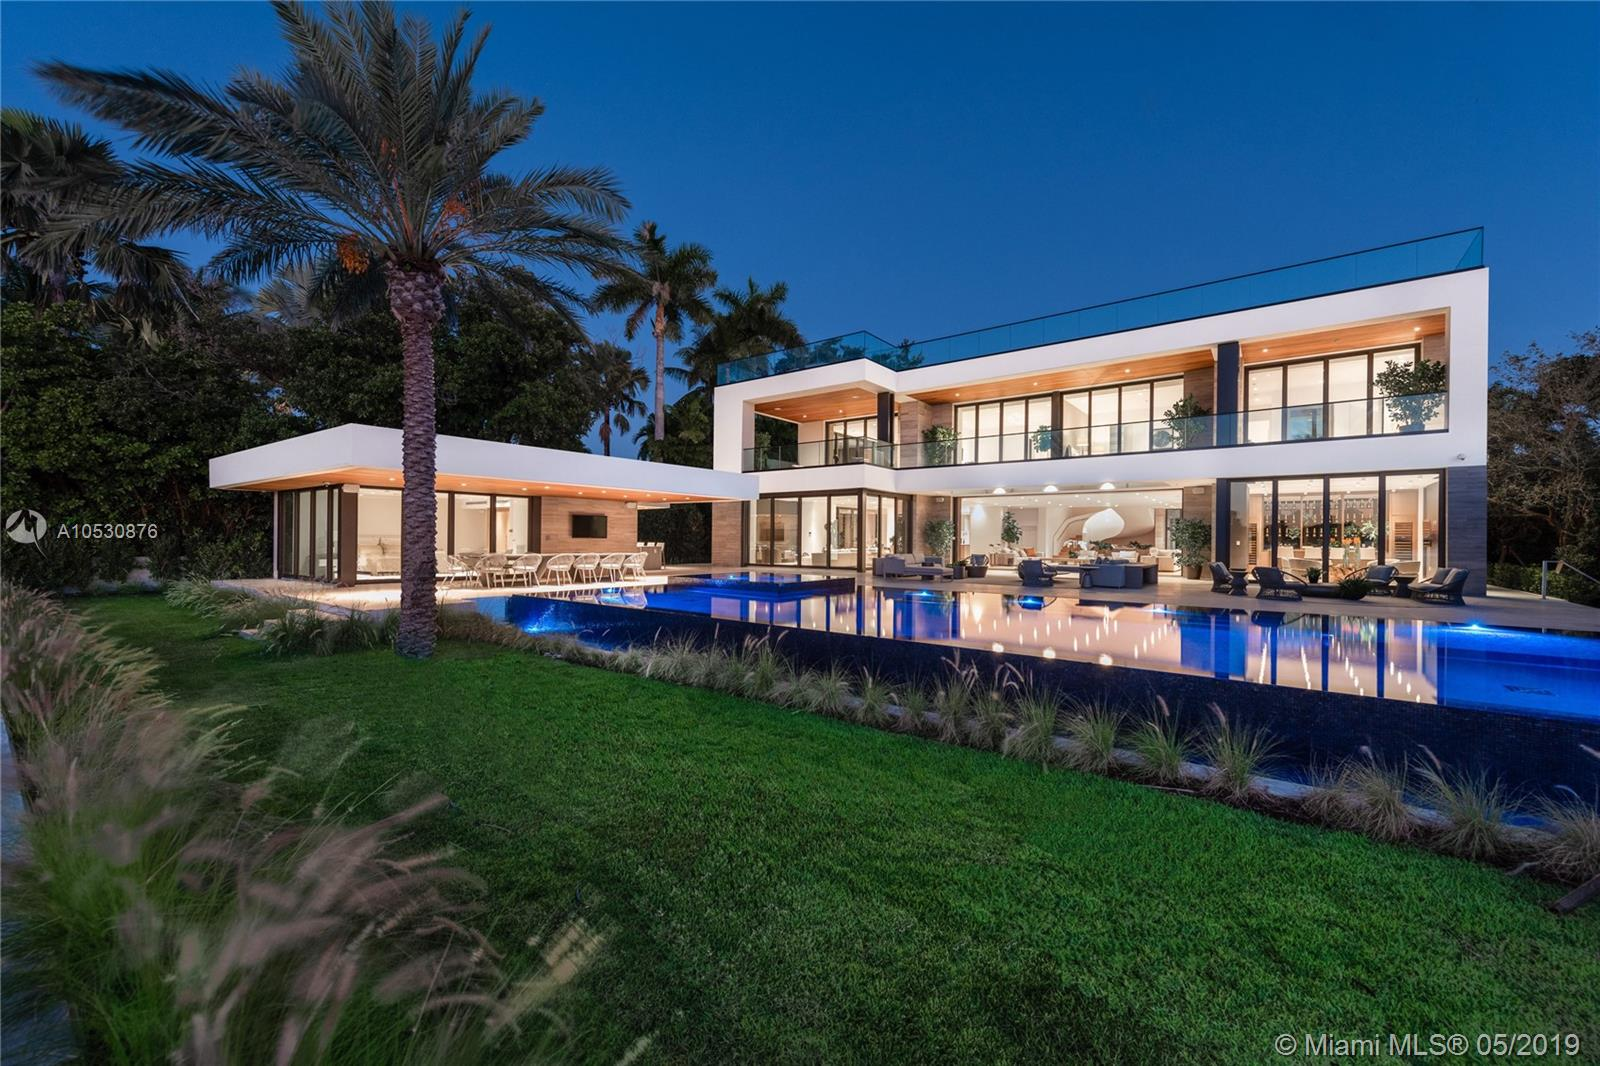 Miami Beach'S Newest Ultra-Luxurious Mega-Mansion! Built In 2018, The Contemporary Masterpiece Sits On 27, 608-Sf Lot With 112-Ft Of Wf & Offers Splendid Water Views Of Biscayne Bay. No Expense Was Spared At This Home Featuring 3, 000-Sf Of Rooftop Decks, 4-Bed 4-Bath Guesthouse With A Gym, 2 Elevators, 3-Car Garage, Cabana House With Kitchenette, Summer Kitchen, Oversized Mosaic Glass Pool With Spa, New Seawall & Pier Dock. The Main House Features 7 Beds, Plus A Dreamy Master Suite With A Large Terrace, Custom-Built Closet & Opulent Marble Bath With A Private Sun-Deck! The Living Areas Feature Wall-To-Wall Glass Doors, Theatre, Entertainment Room, High-End Italian Kitchen With A Cooking Island, Formal Dining/Family Room & More. Fully Completed! Total Sf 16, 545.